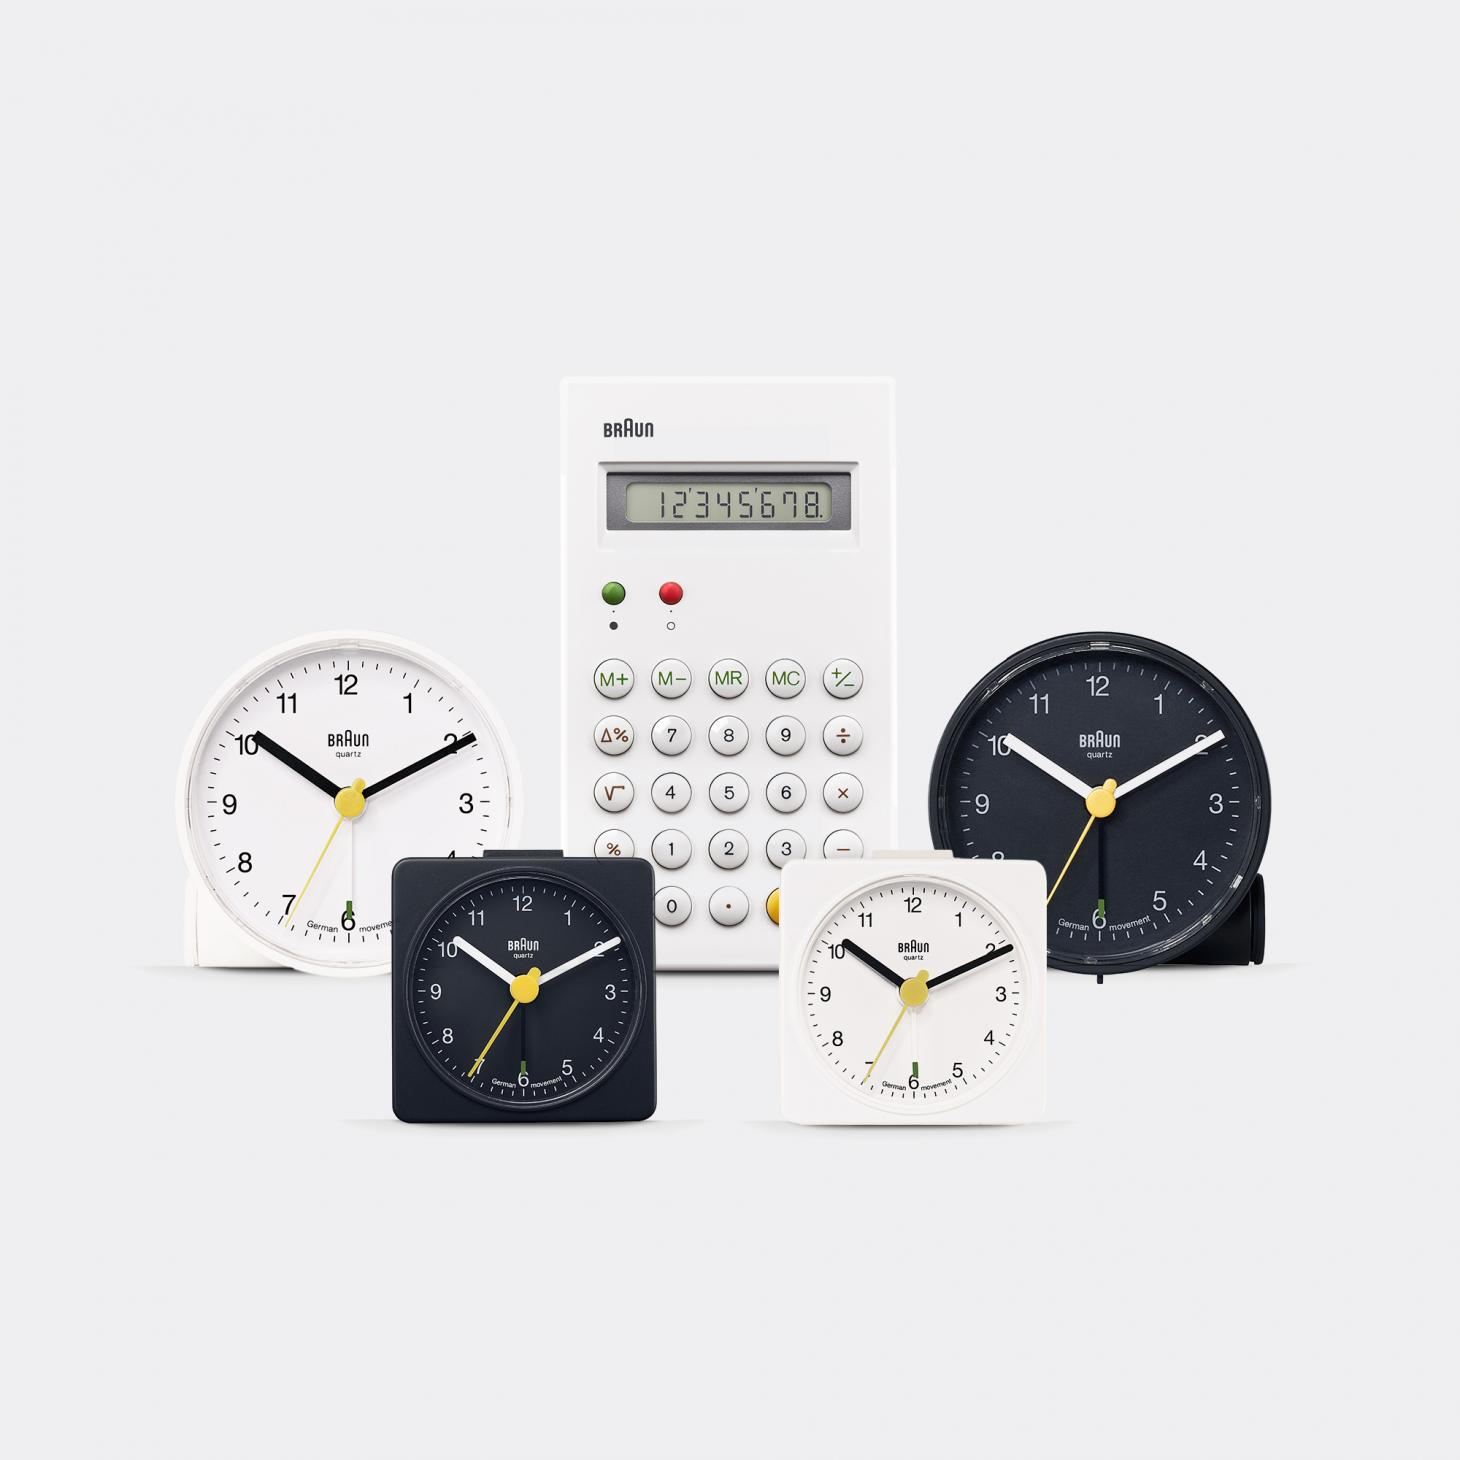 iconic calculator by braun